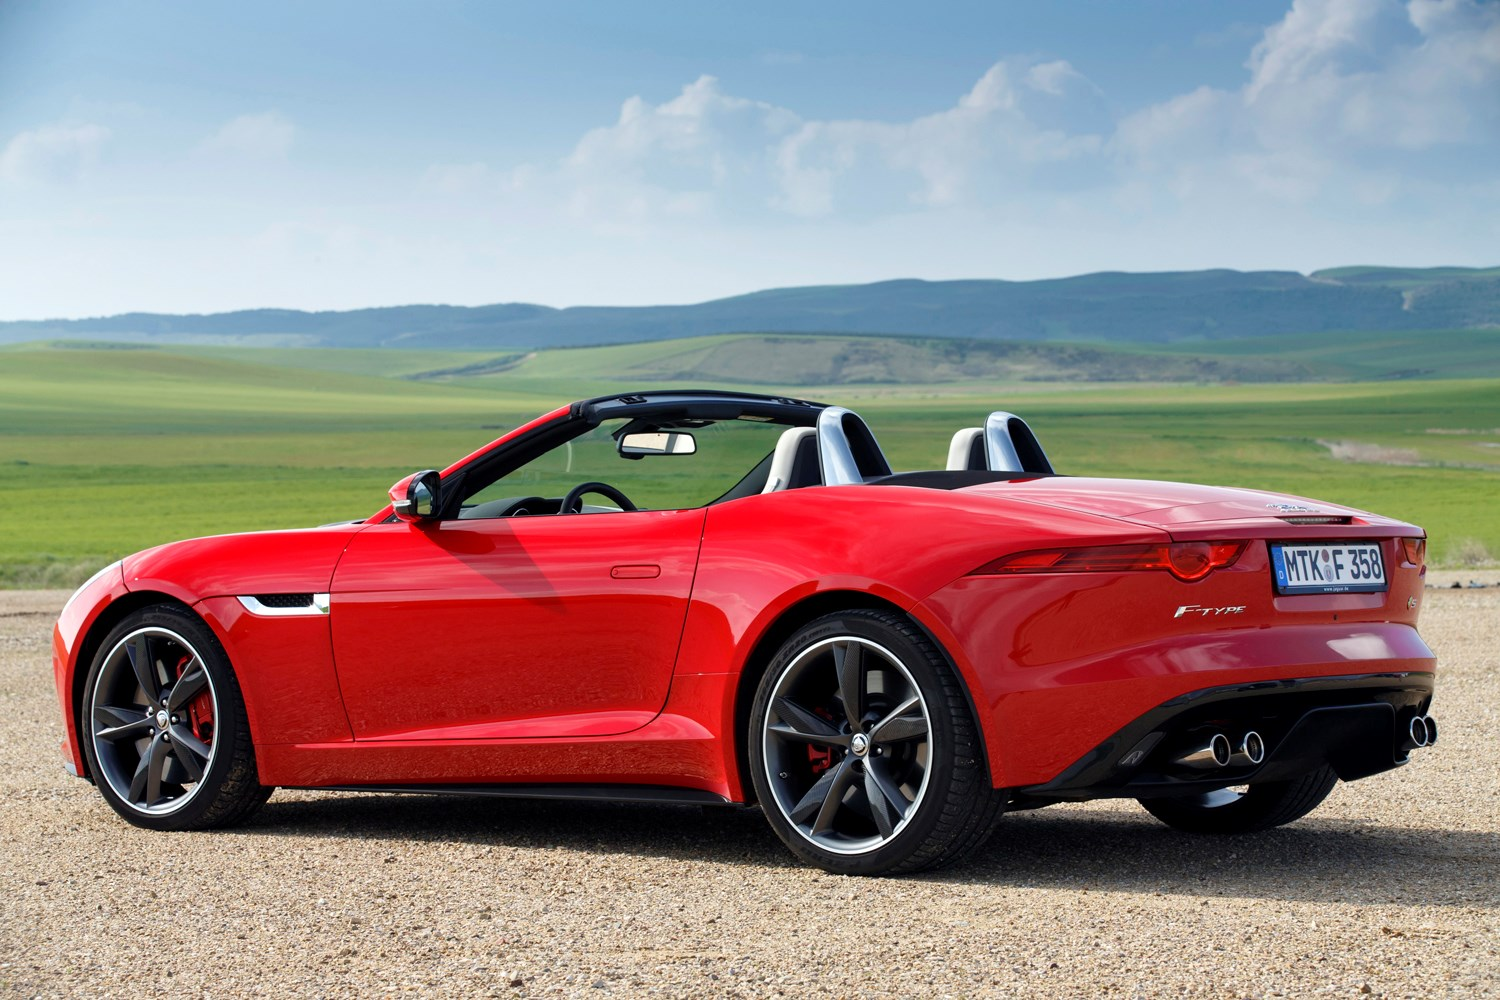 jaguar f type roadster review 2013 parkers. Black Bedroom Furniture Sets. Home Design Ideas